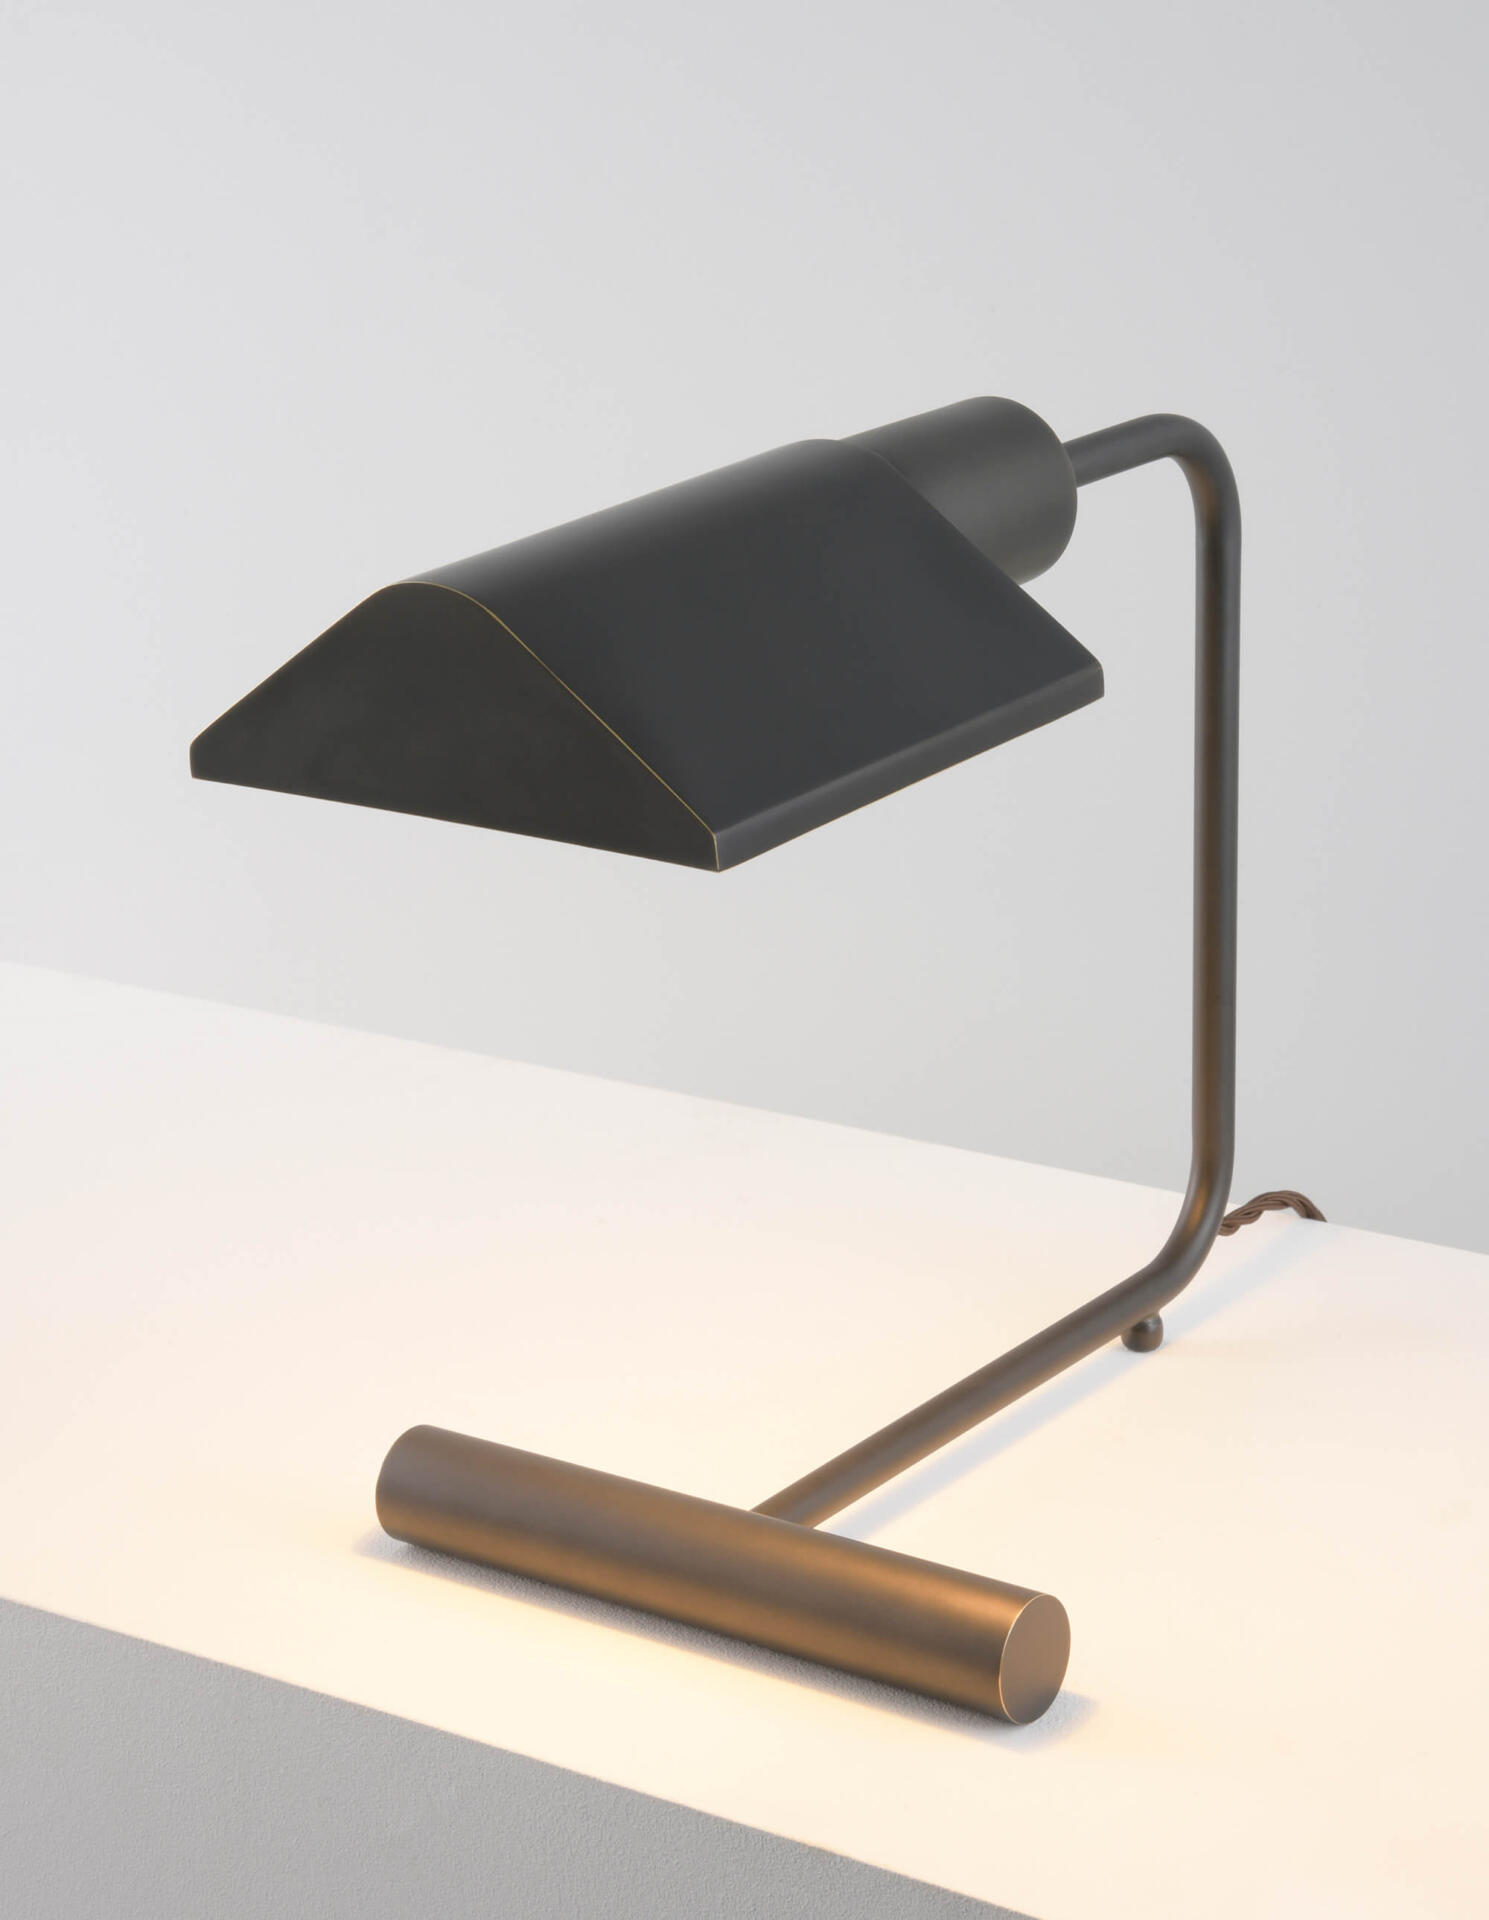 A mid century style desk lamp made from brass and coloured in an Antique Bronze finish